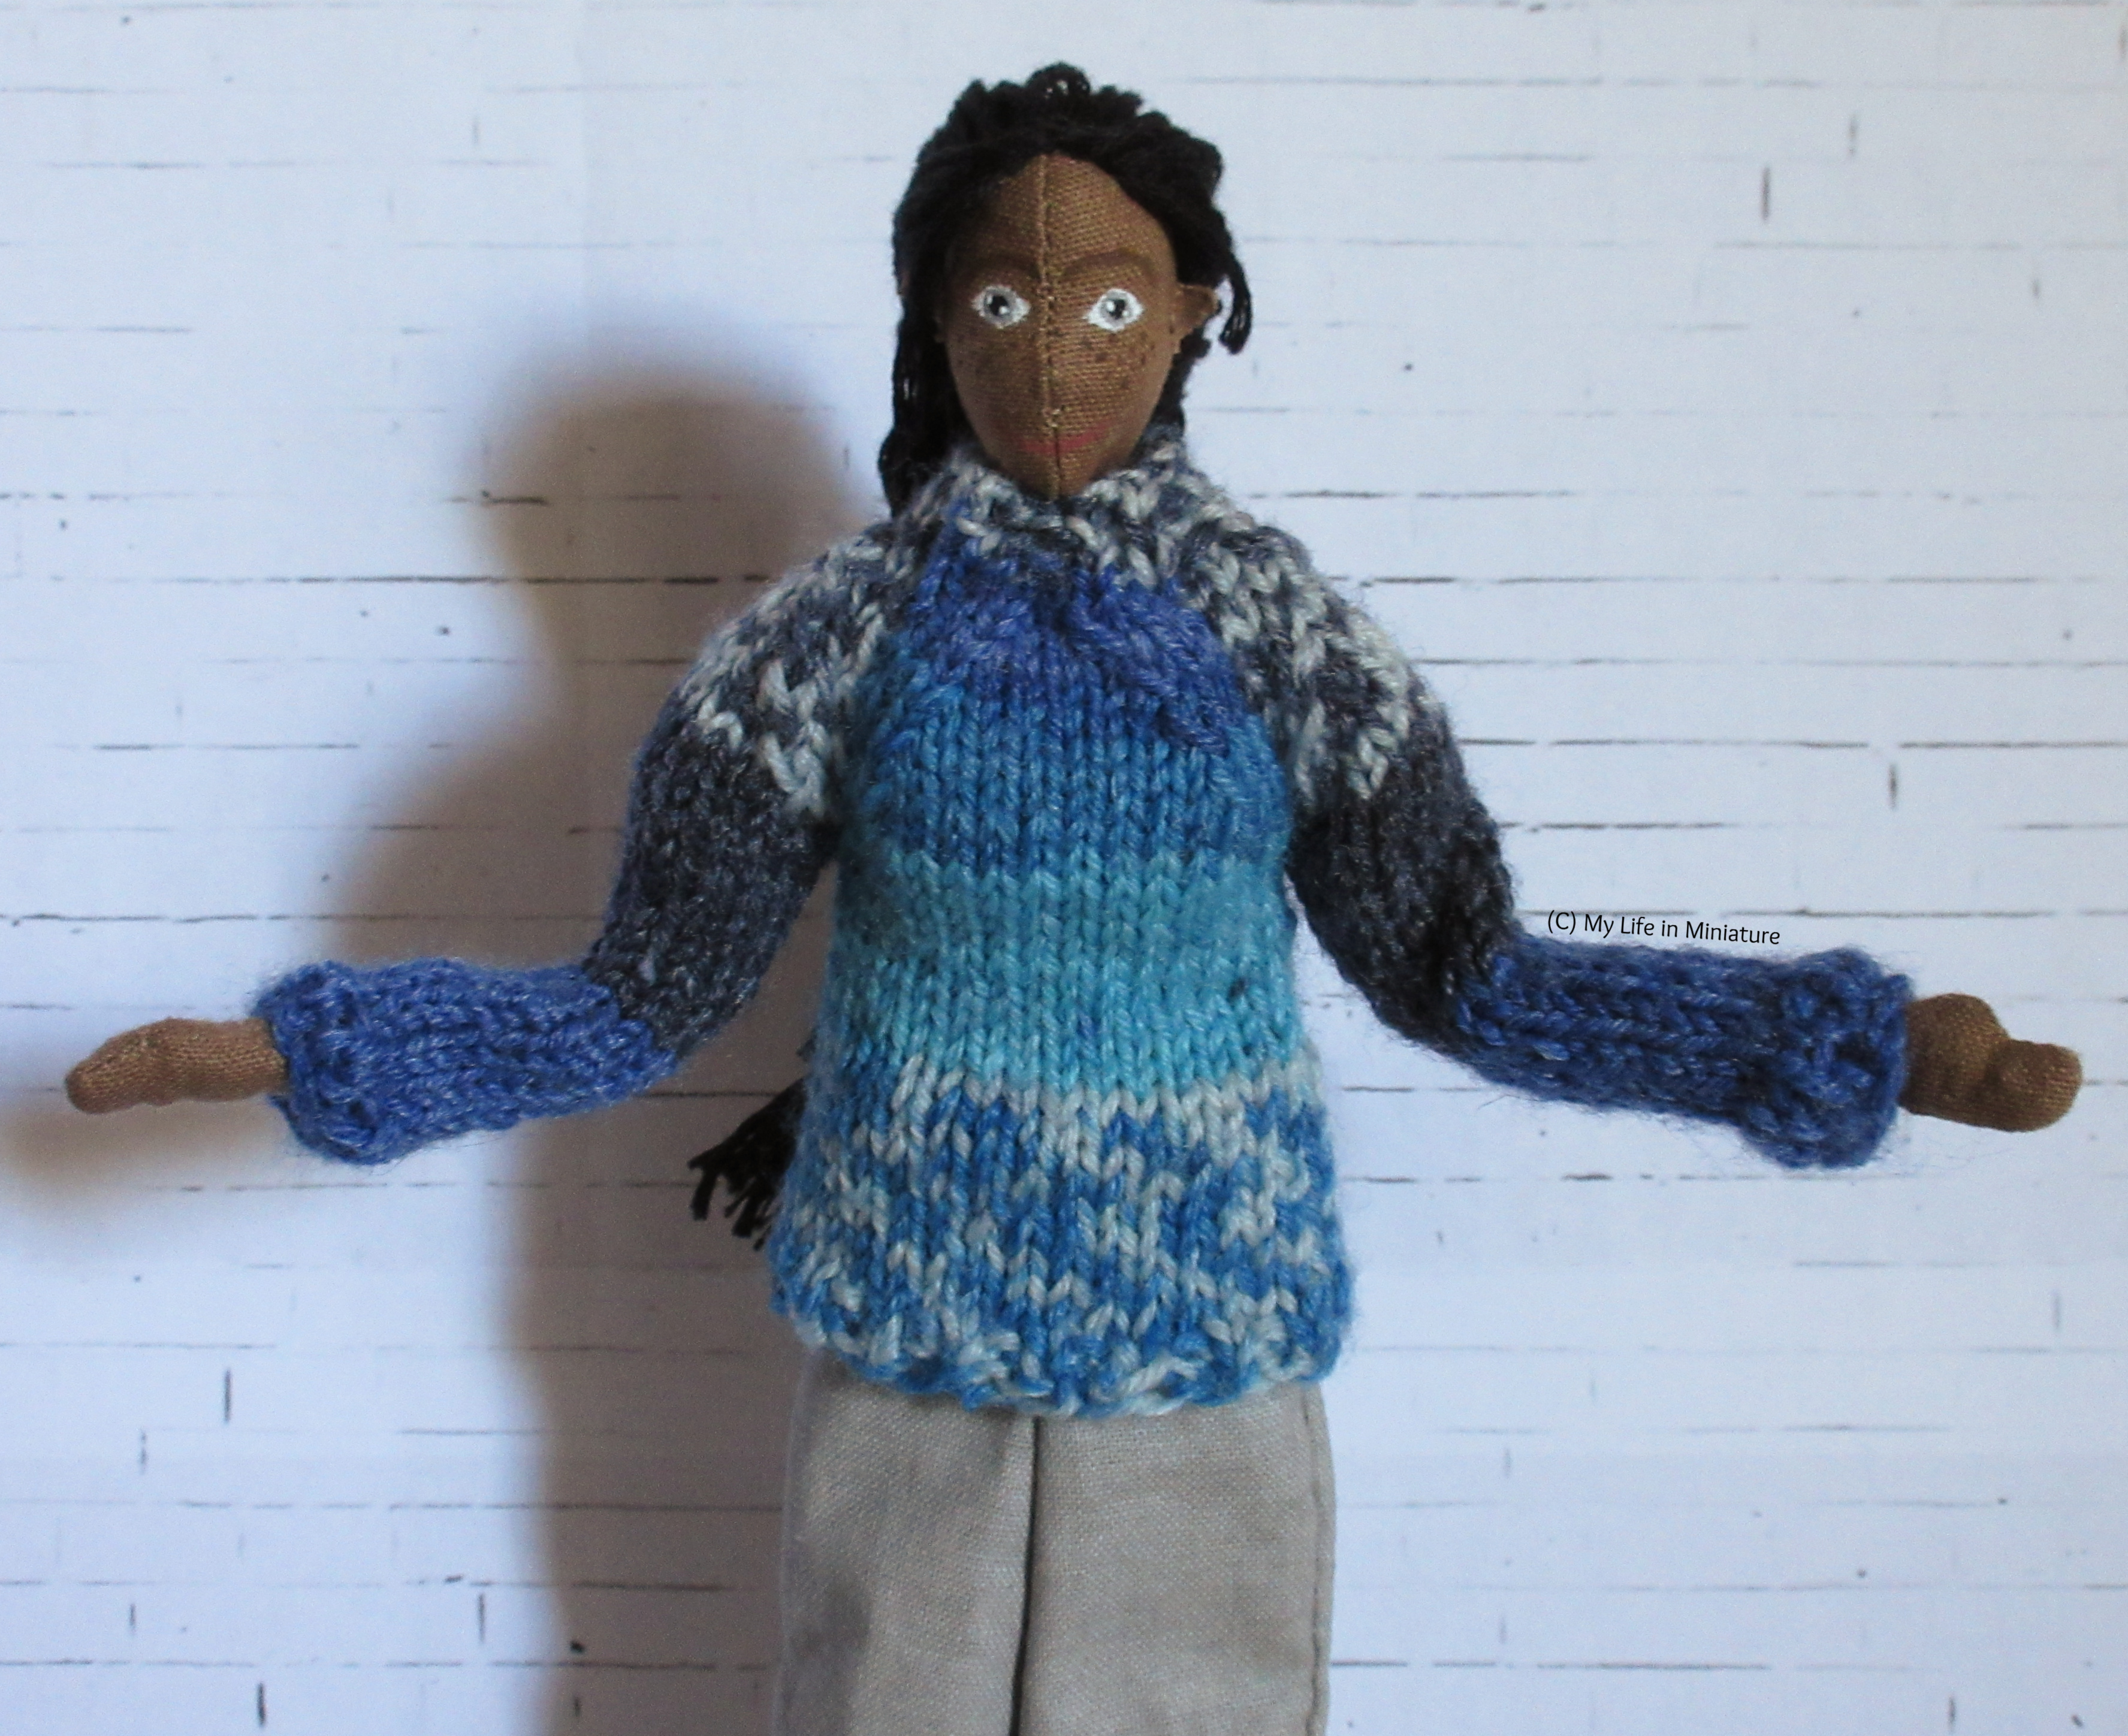 Petra stands against a white brick background, arms out in a 'look at my outfit' pose. She wears a knitted jumper in various shades of blue and loose grey pants.